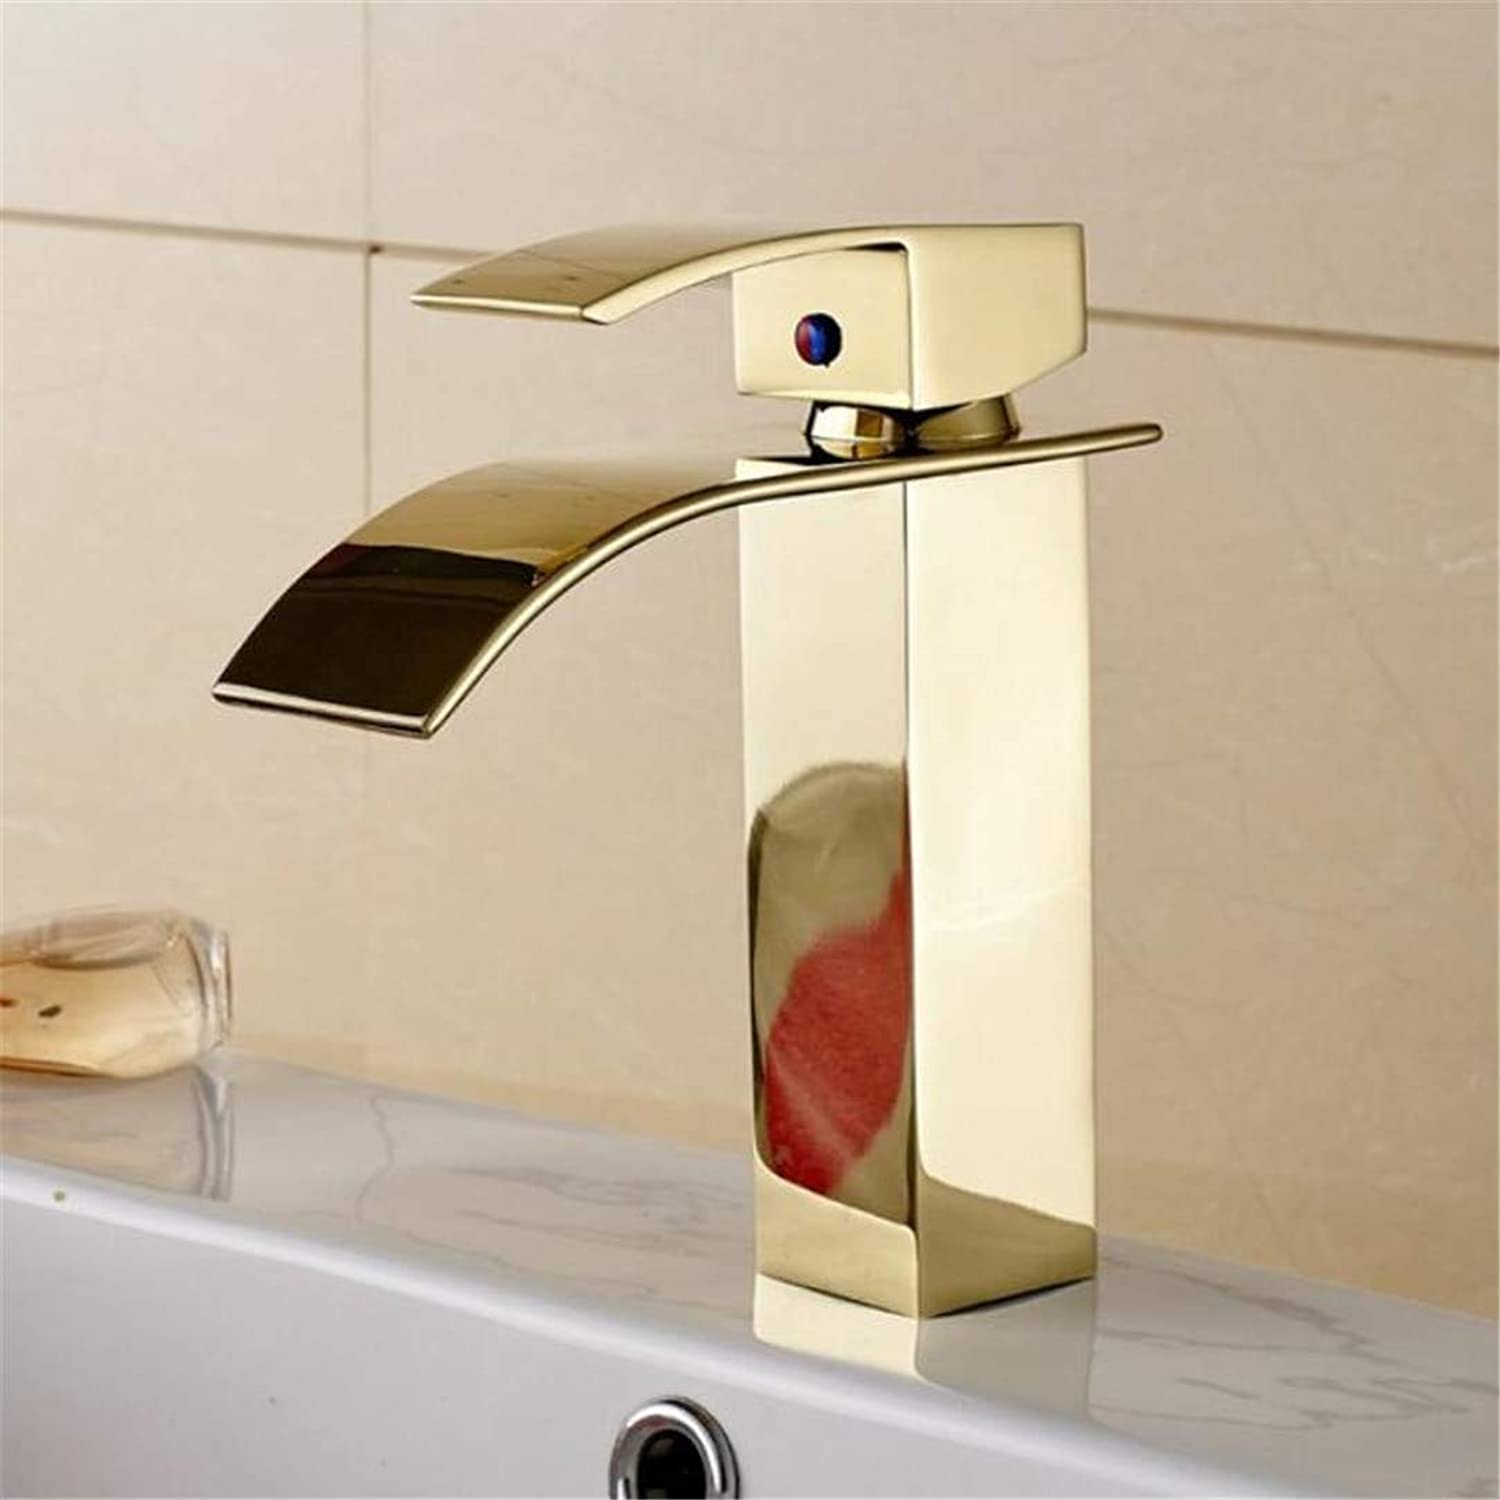 Faucets Basin Mixer golden Waterfall Faucet with Solid Brass Bathroom Waterfall Basin Faucet of Hot Cold Water Mixer Tap